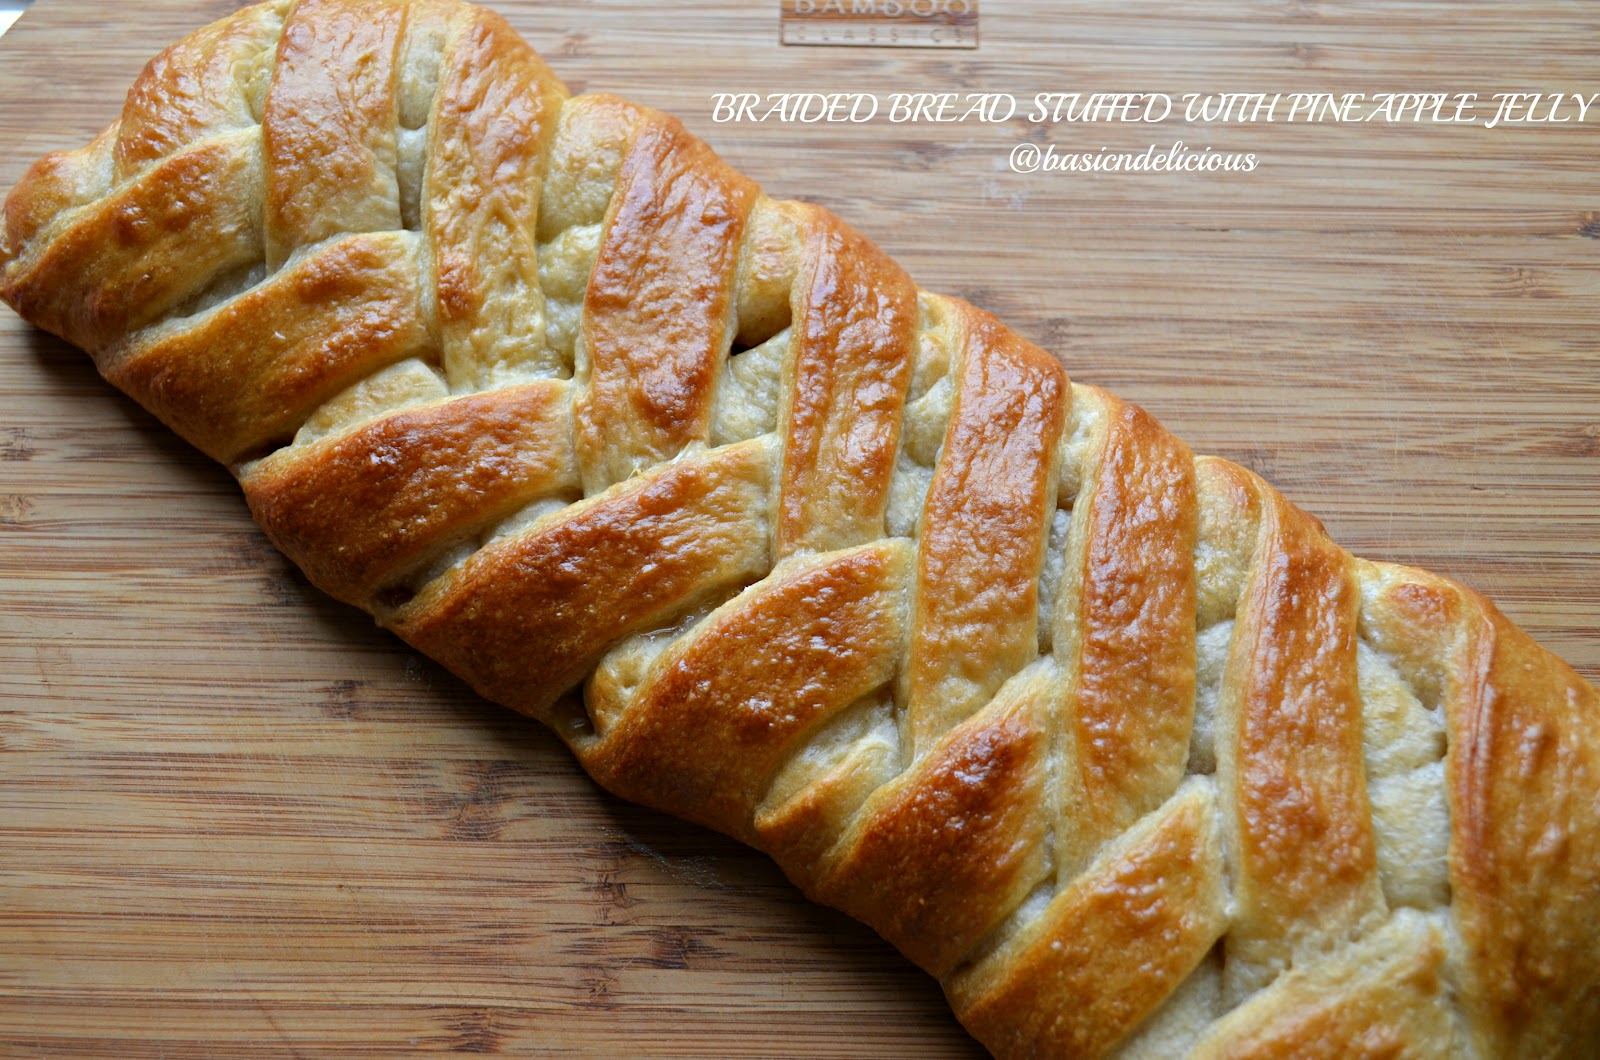 variety of bread that exists, I personally love this braided bread ...